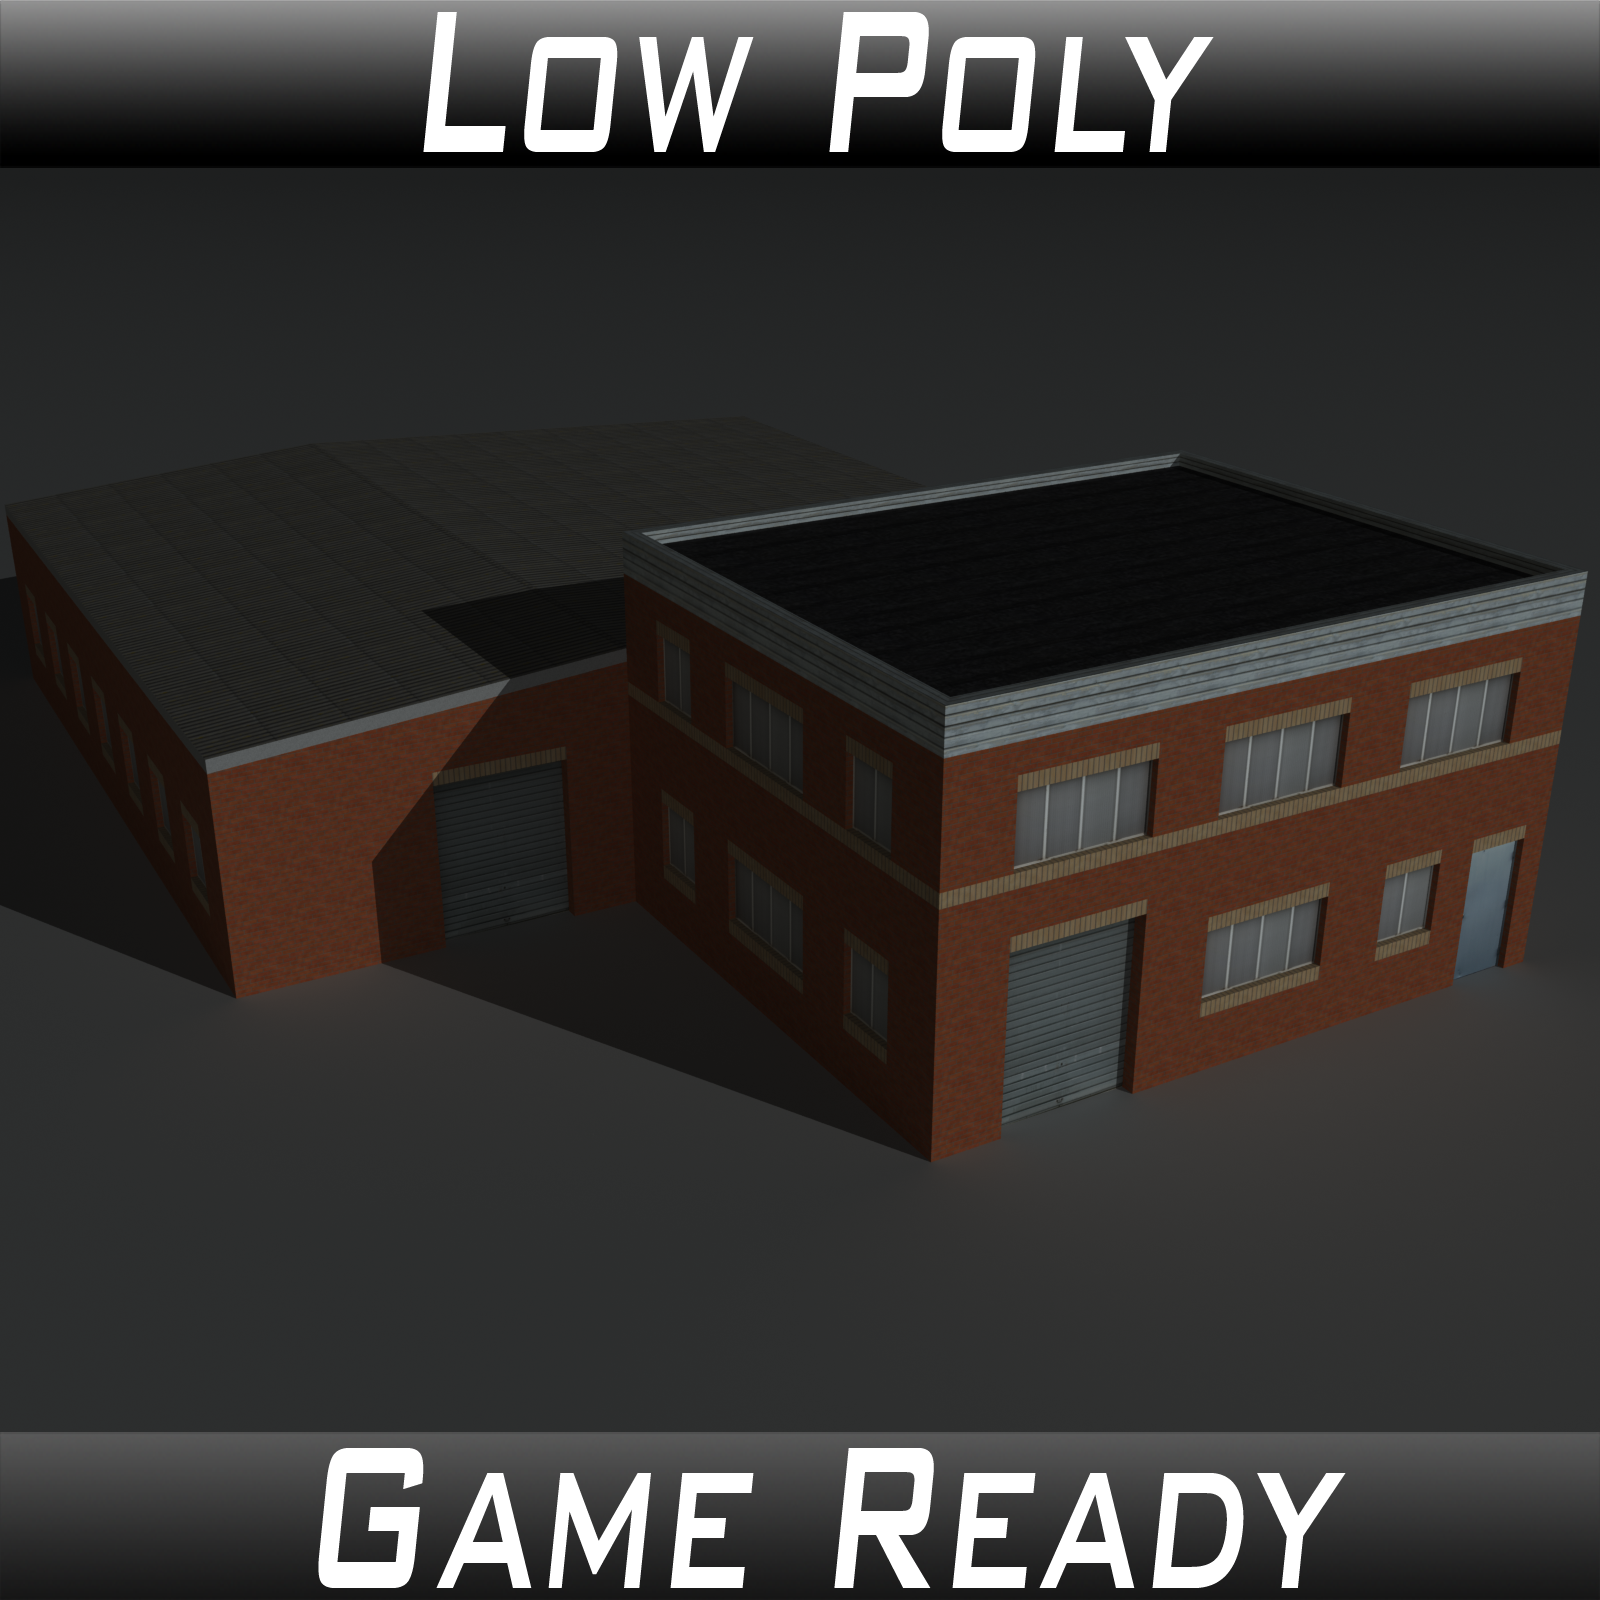 Low Poly Factory Building 23 - Extended Licence by 3dlands